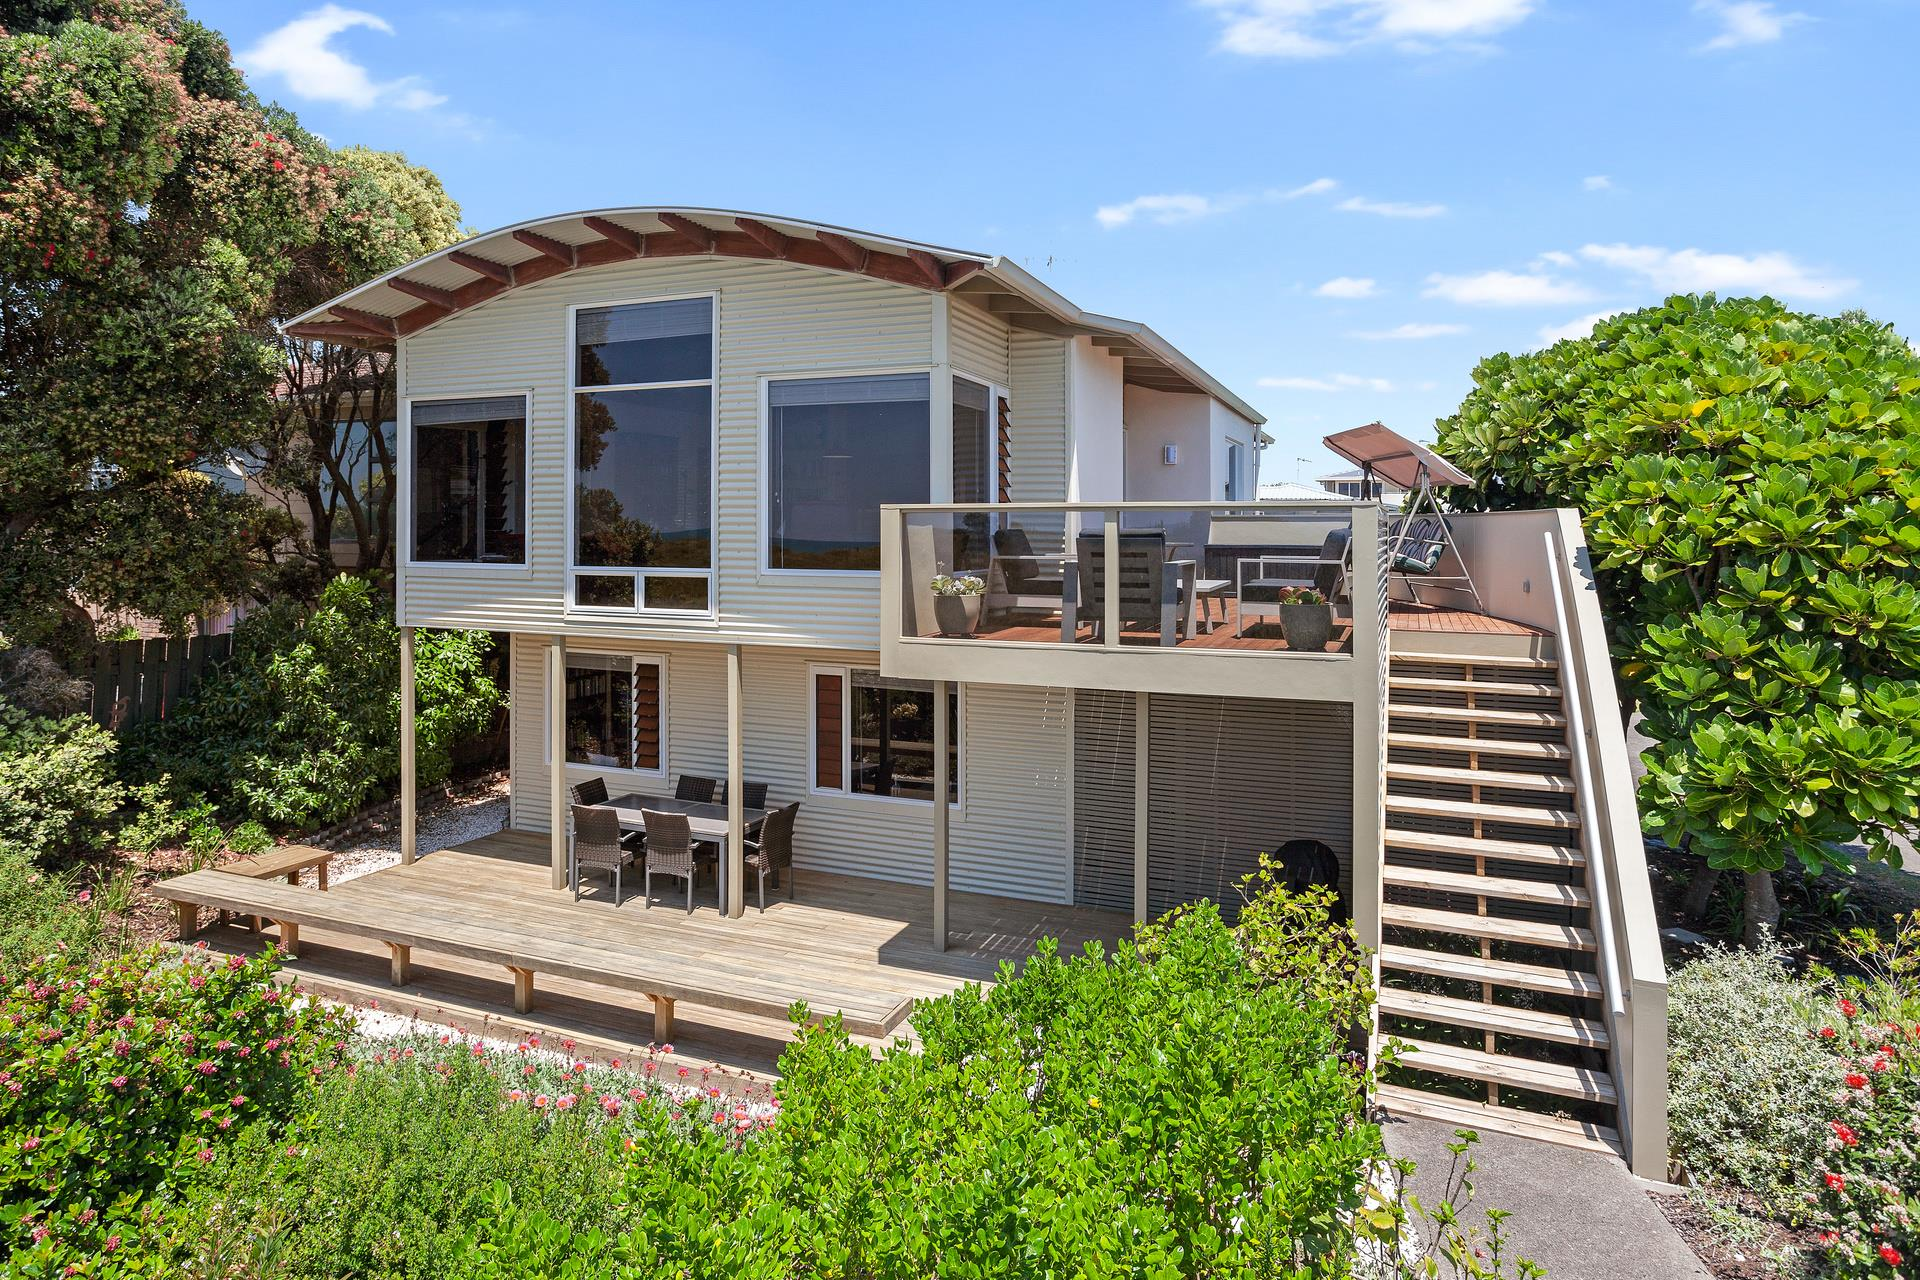 Sold January 2019 384A Ocean Rd